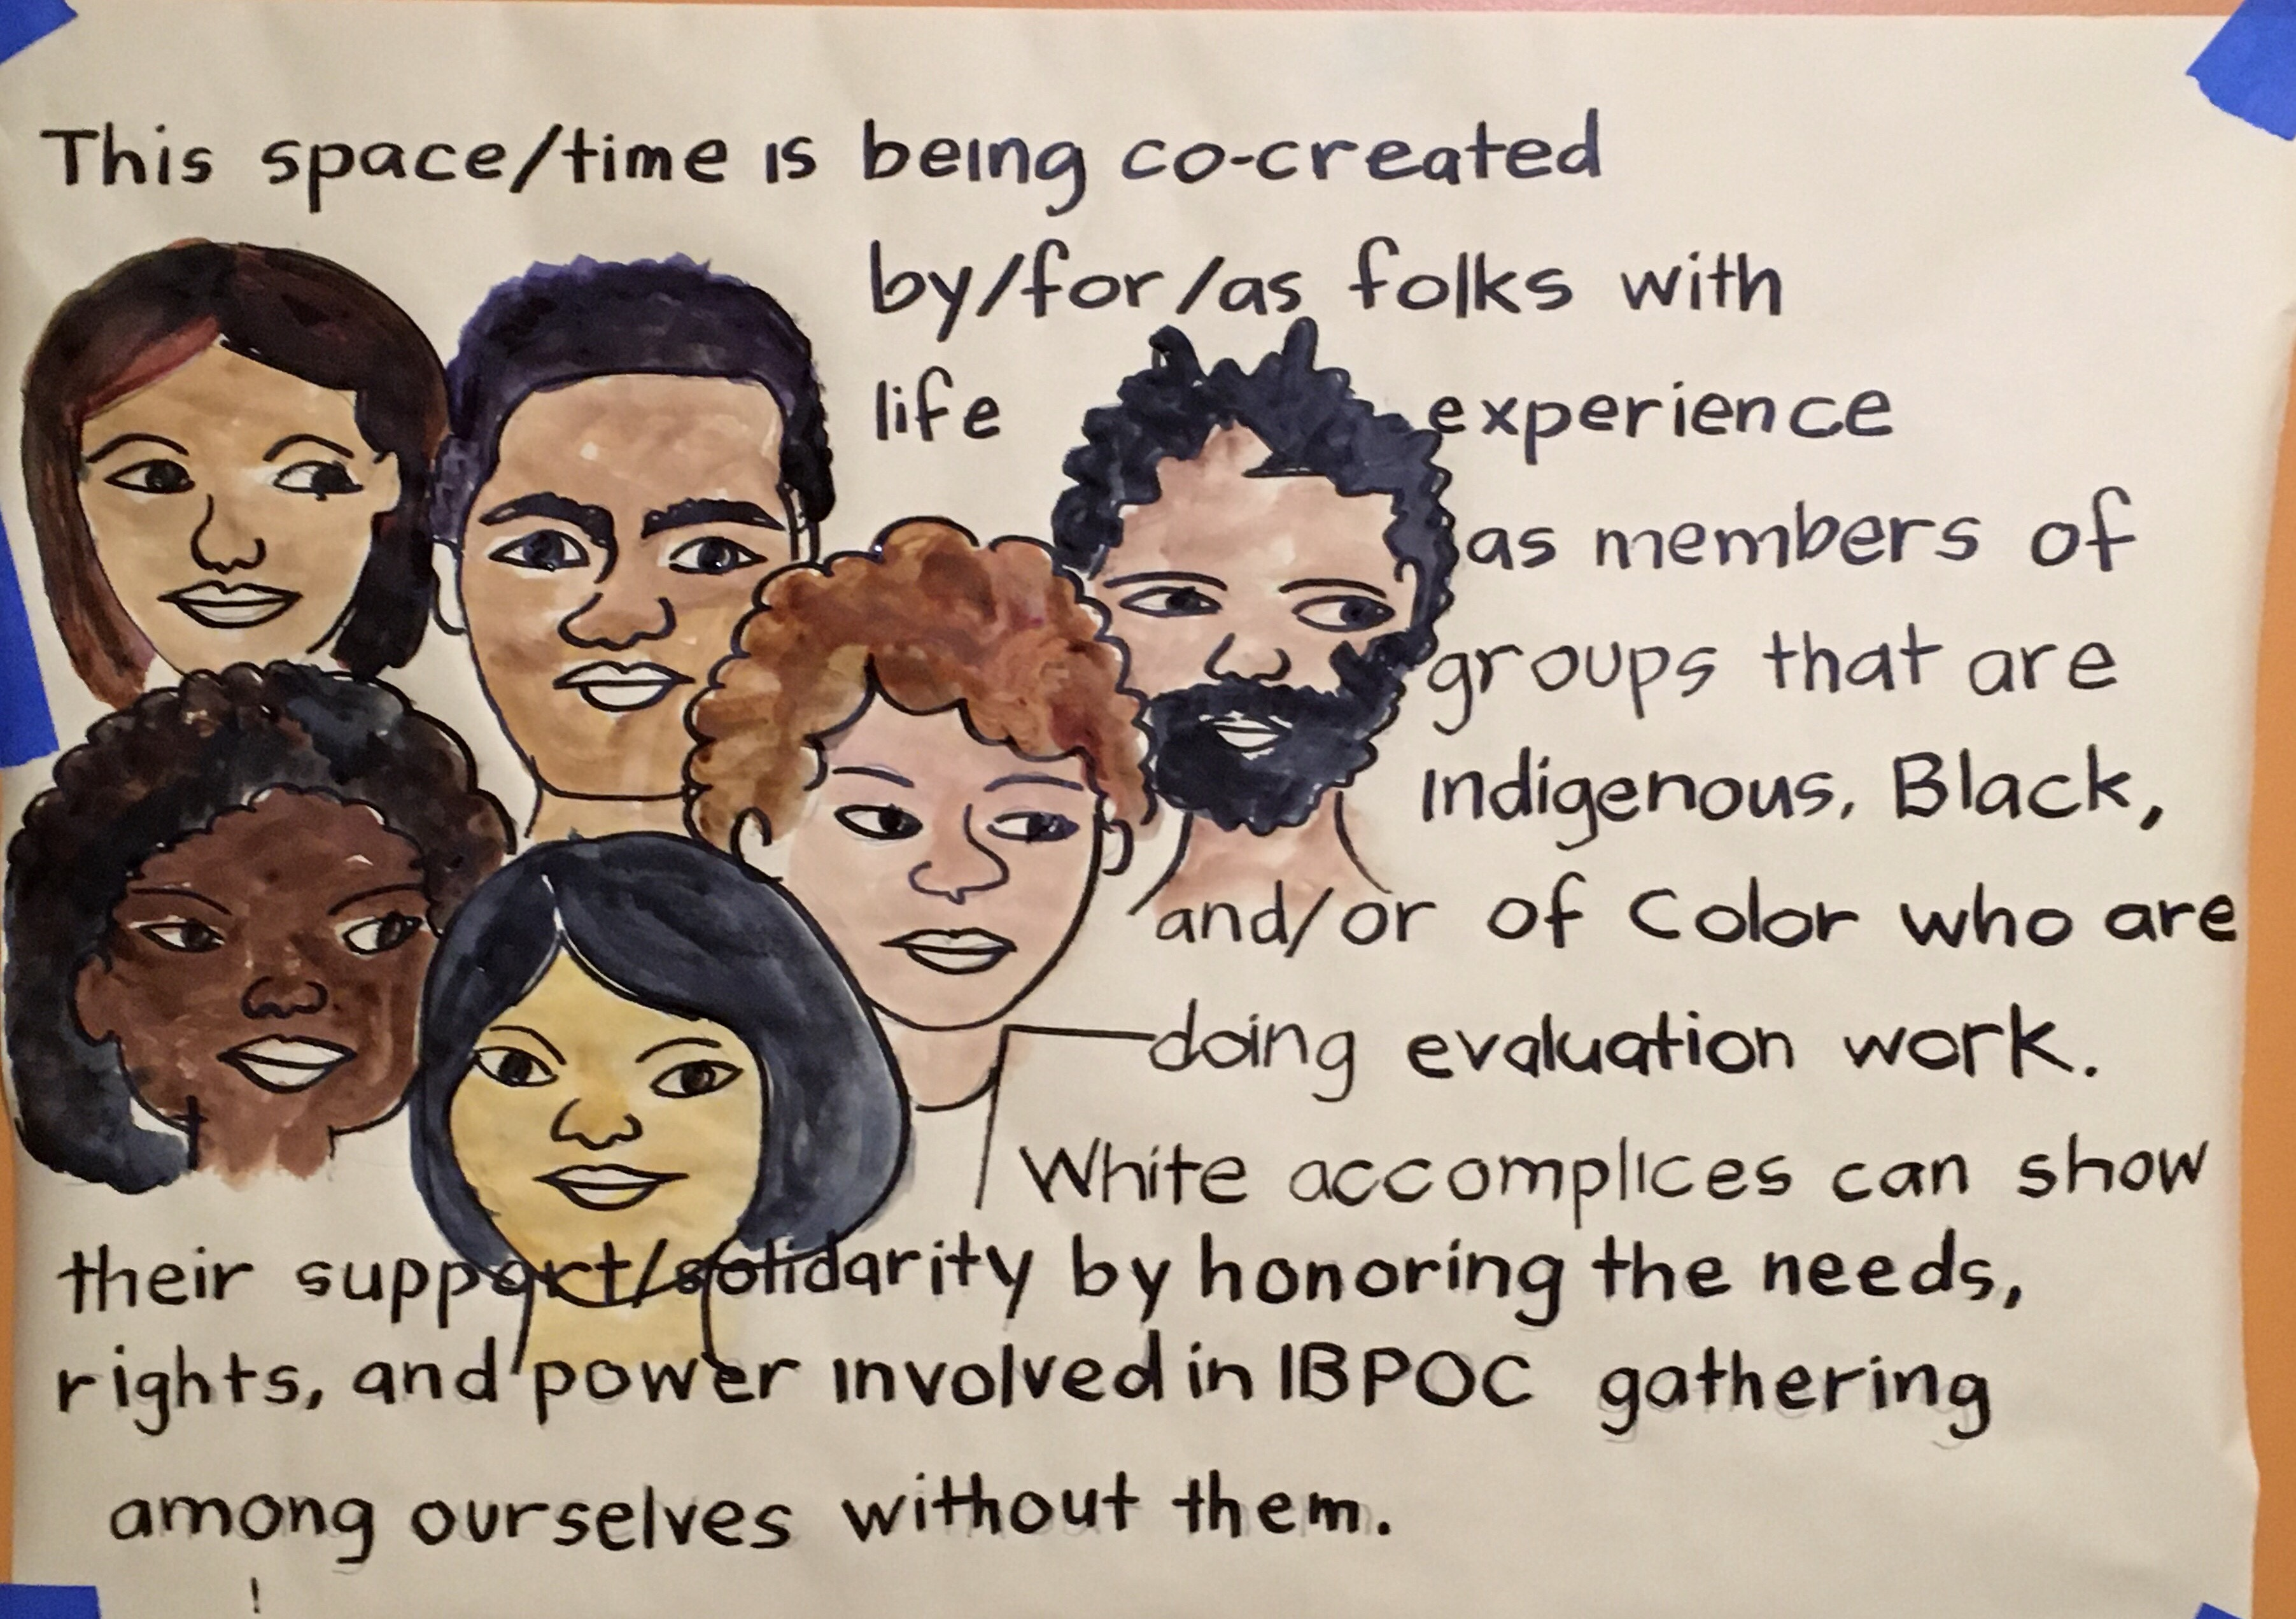 """Description of image: The faces of 6 people of varying genders and hair colors and skin colors, with the words, """"This space/time is being co-created by/for/as folks with life experience as members of groups that are Indigenous, Black, and/or Of Color who are doing evaluation work. White accomplices can show their support/solidarity by honoring the needs, rights, and power involved in IBPOC gathering among ourselves, without them. There may be future opportunities for white accomplices to engage with us in these conversations."""" Beautifully rendered by Anne Gomez of Picture This Graphic Recording & Facilitation."""